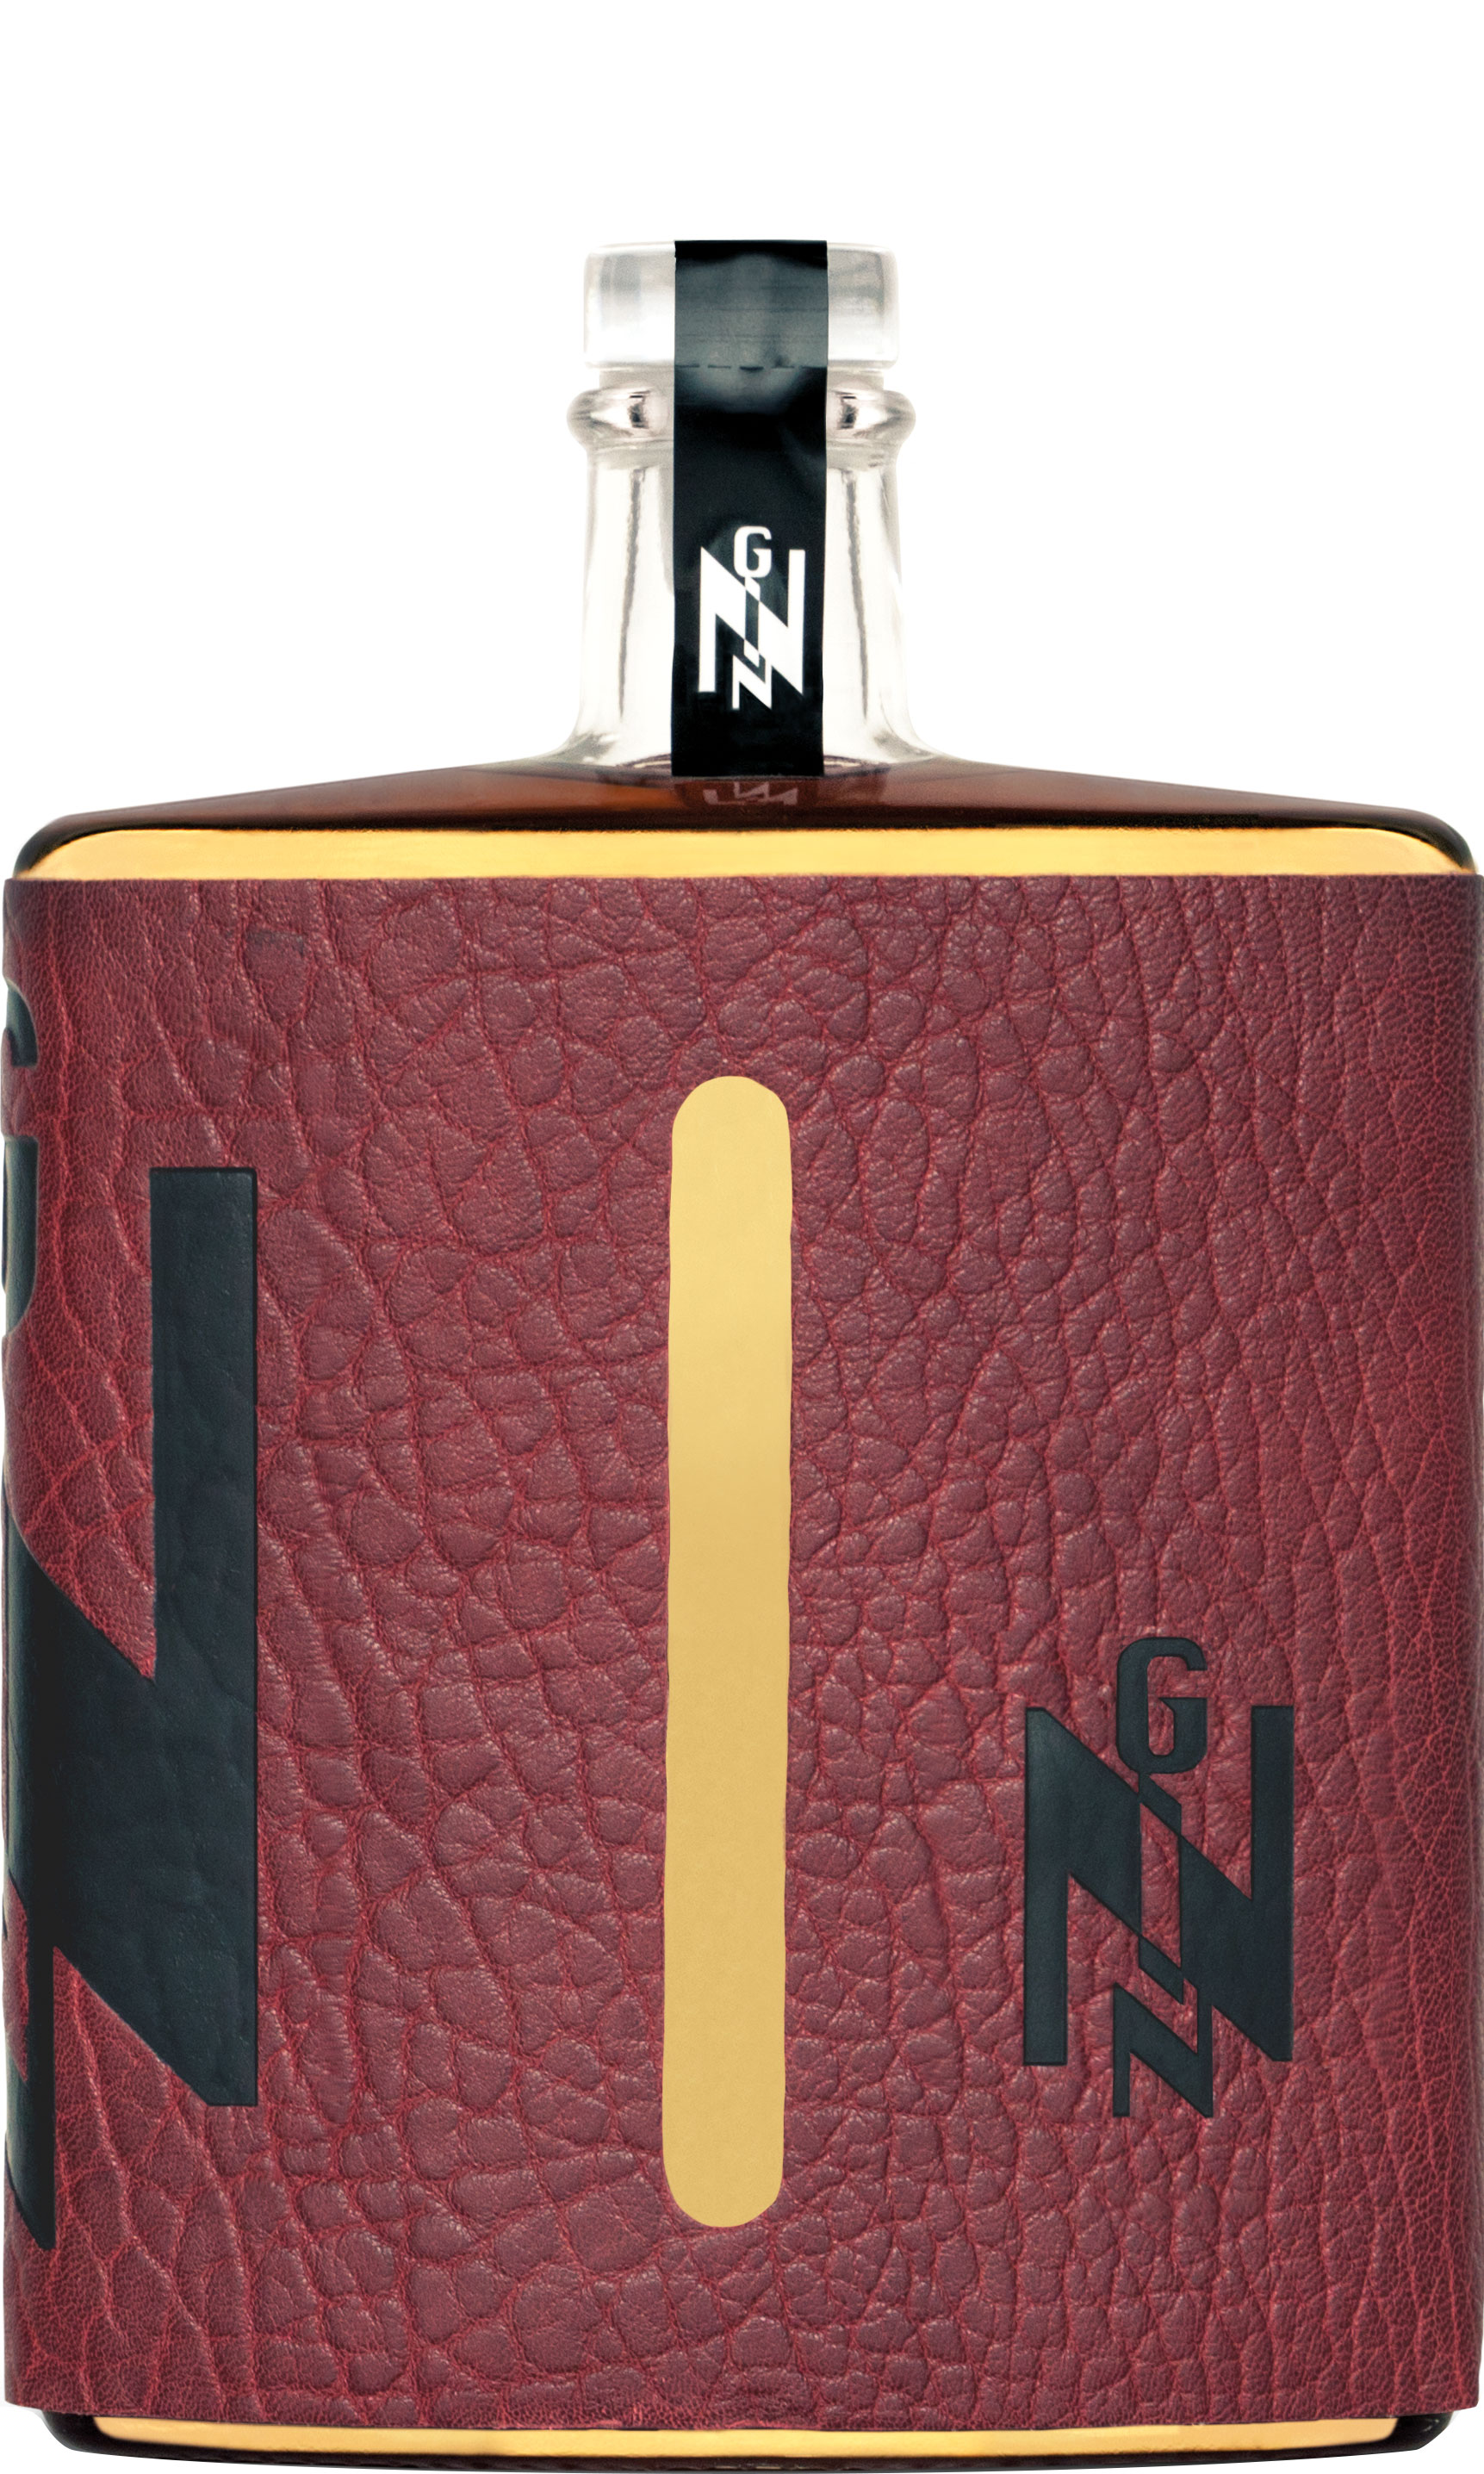 Nginious - Cocchi Vermouth Cask Finish Gin 50cl Bottle